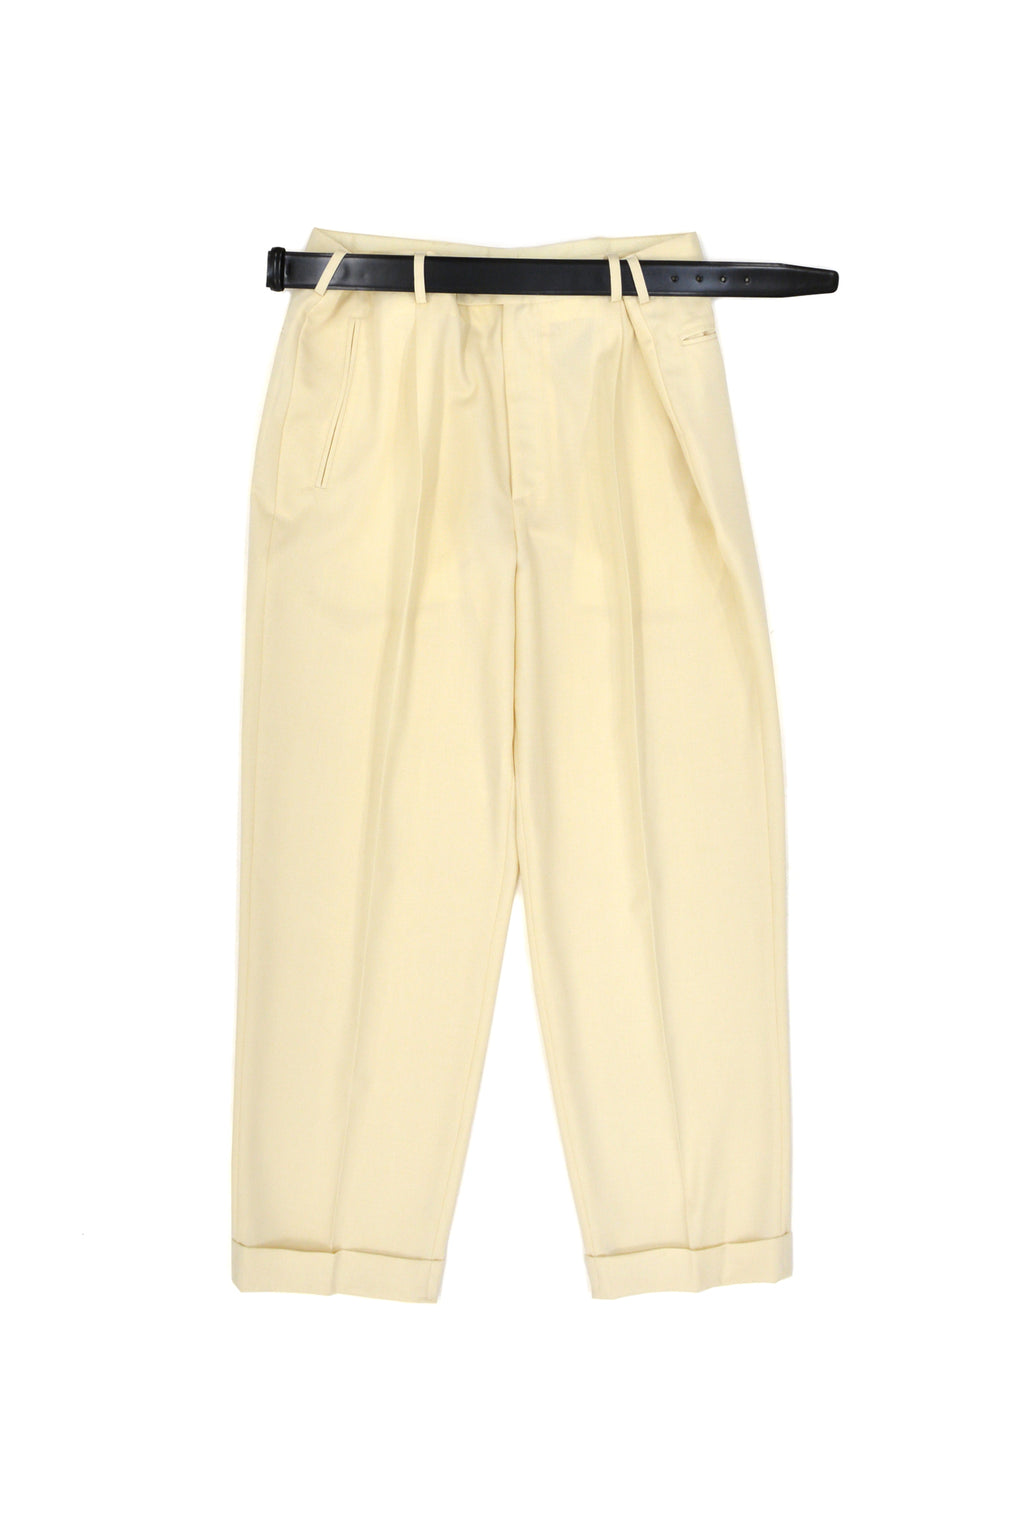 Magliano Super Pence Belt Trousers, Ivory